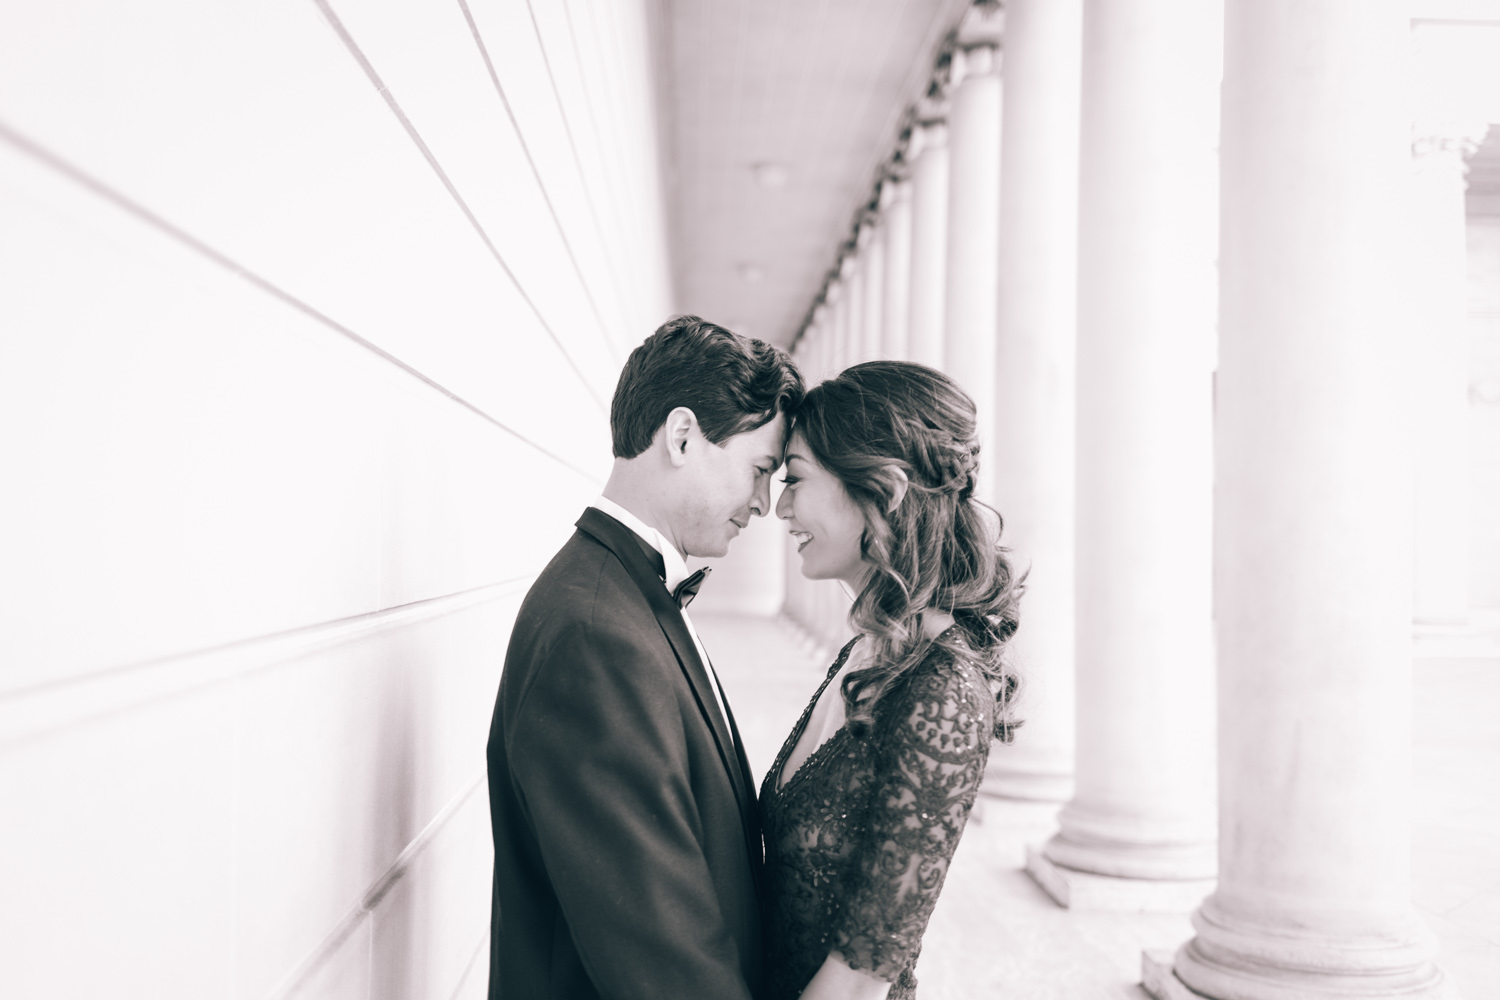 Engagement-Wedding-Photographer-San-Francisco-Engagement-session-Baker-Beach-Palace-of-Fine-Arts-and-Legion-of-Honor-byJBJ-Pictures-9.jpg